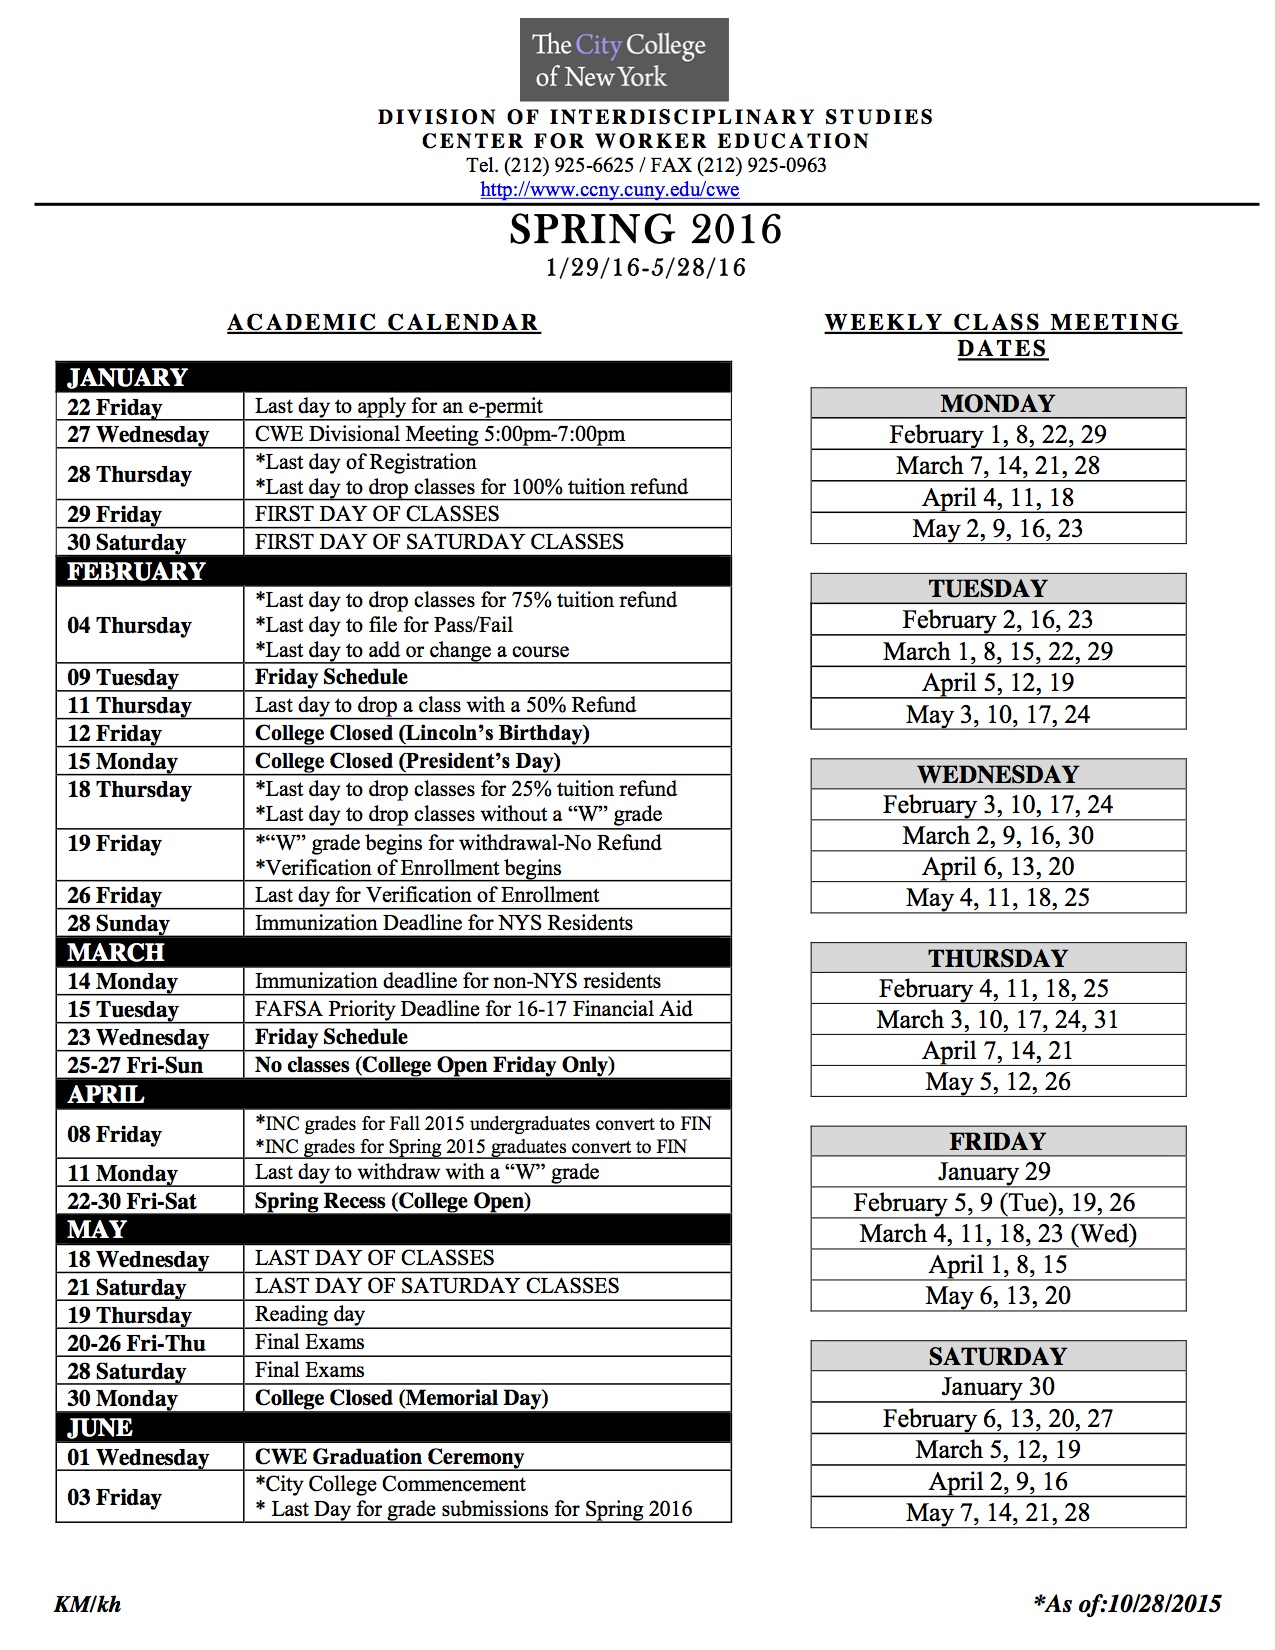 Academic Calendar | The City College Of New York with regard to Suffolk Community College Academic Calendar